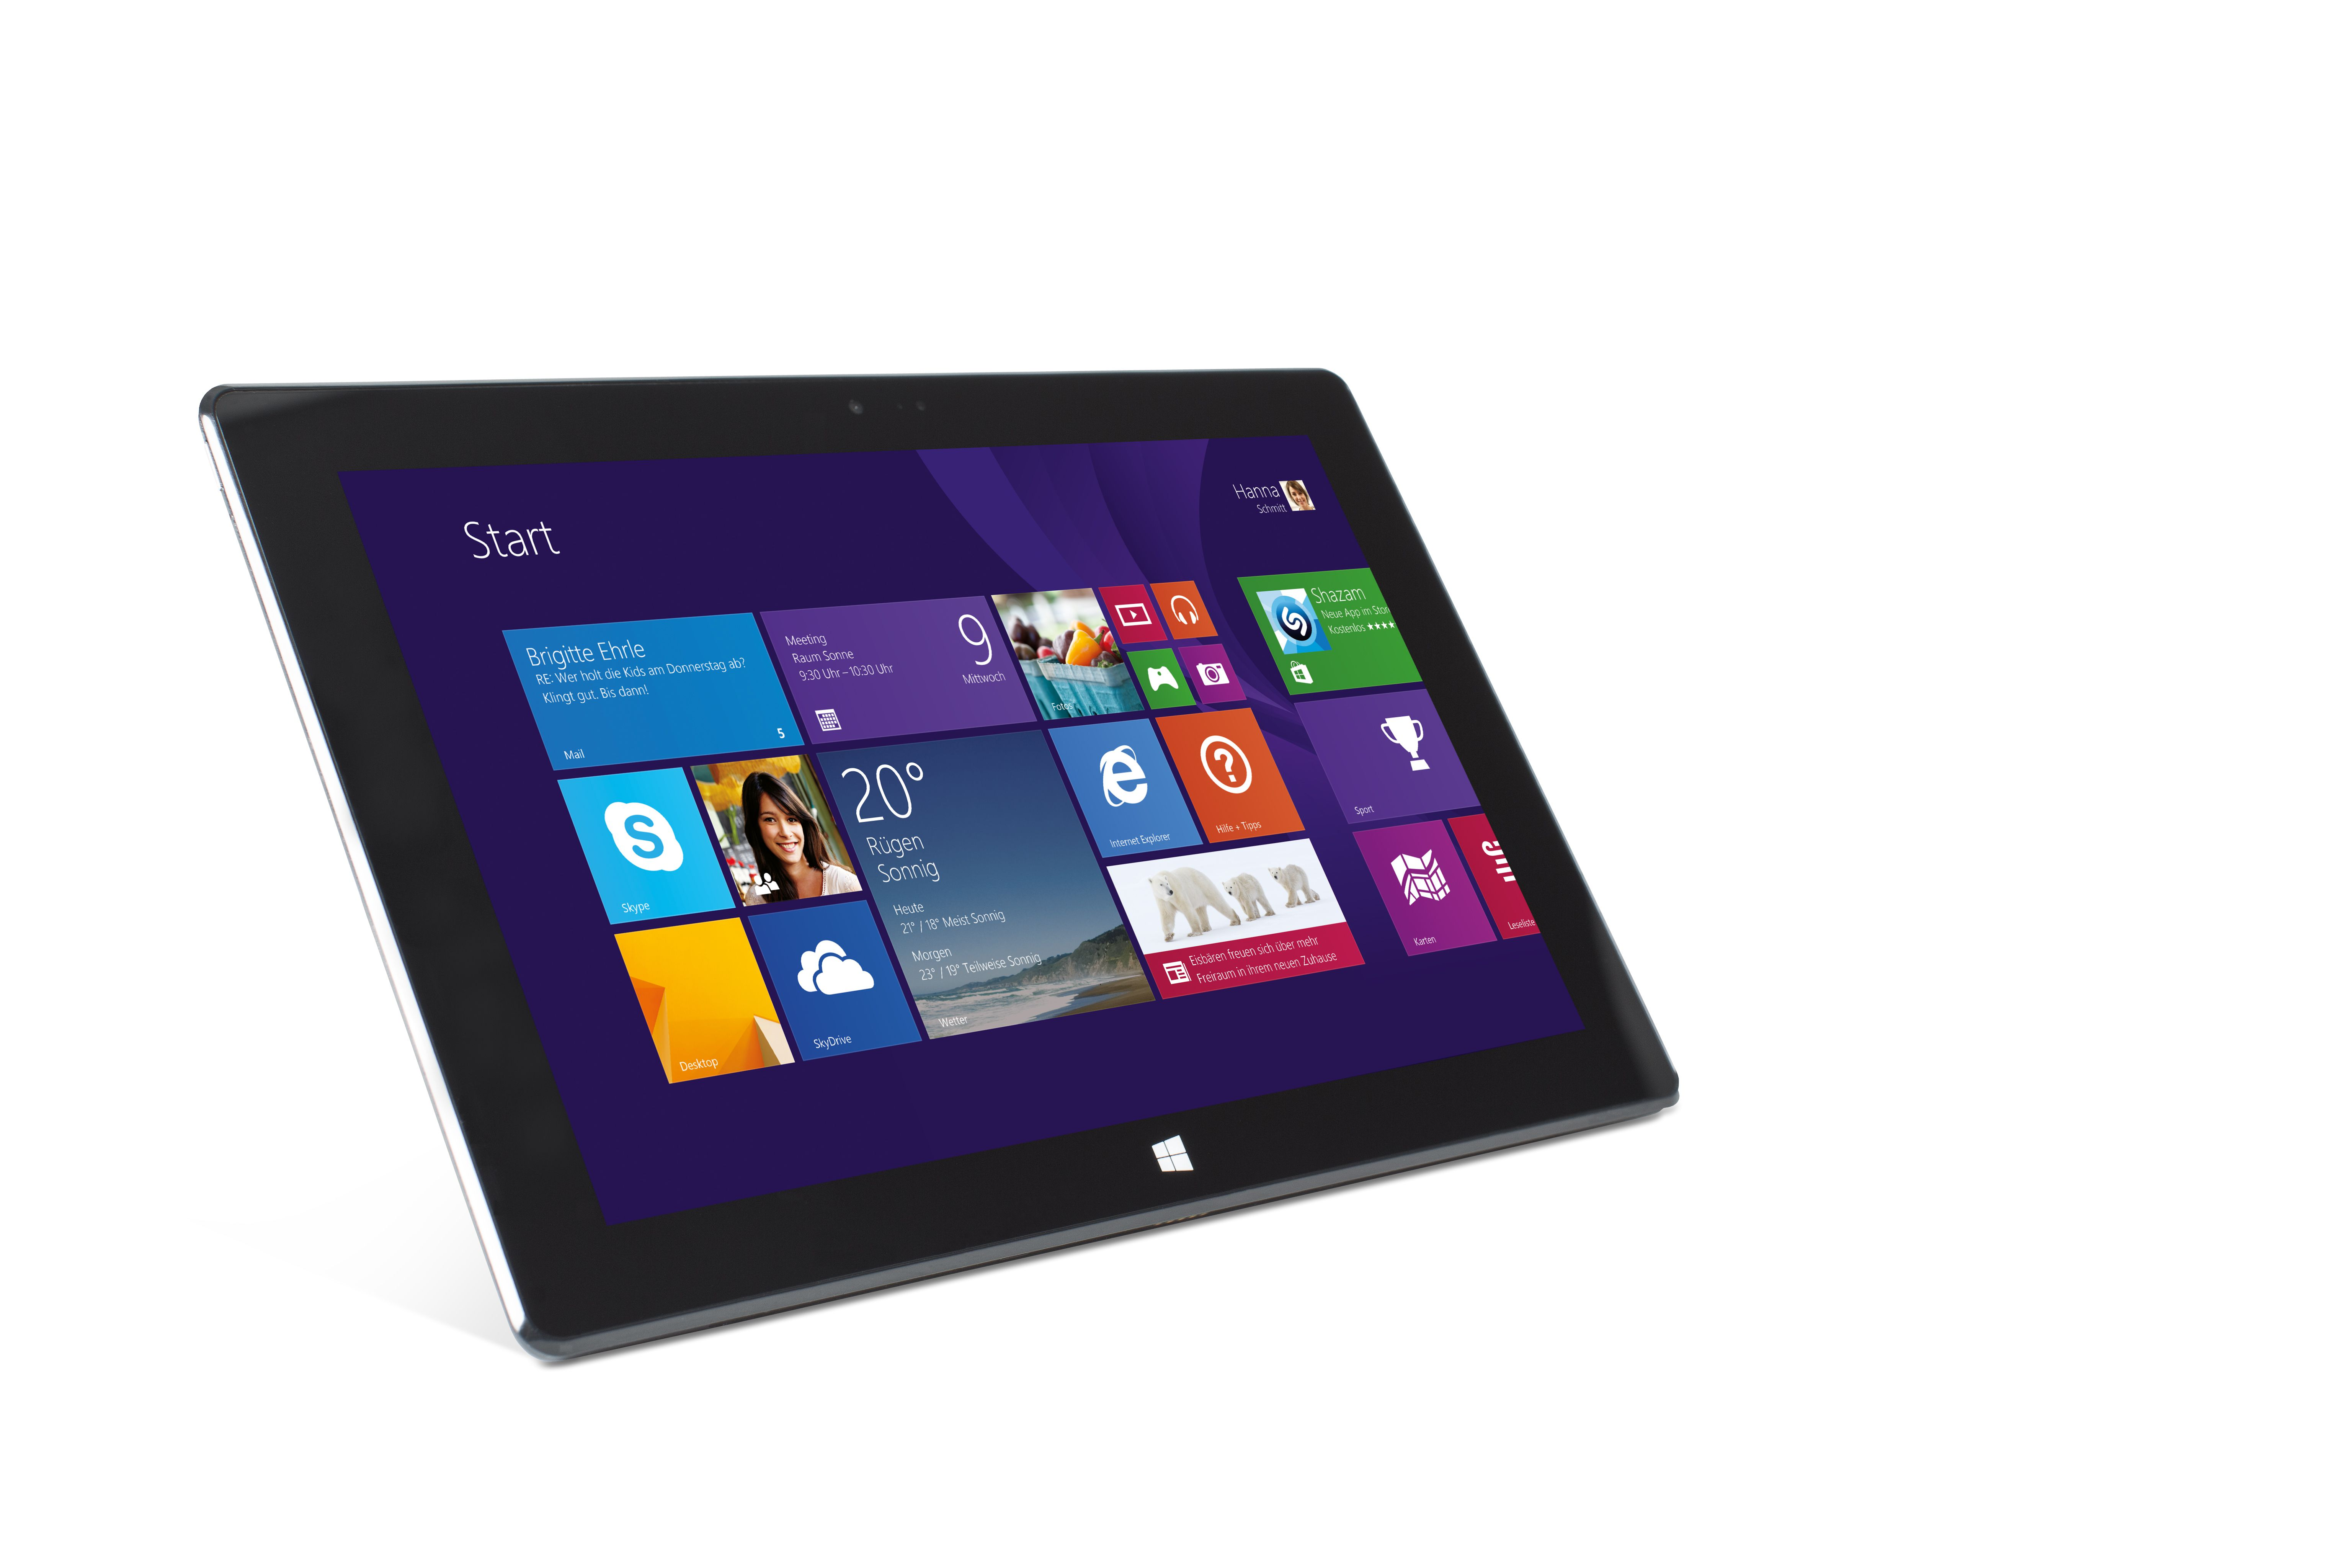 terra pad 1061 tablette windows 8 1 avec intel atom quad core. Black Bedroom Furniture Sets. Home Design Ideas